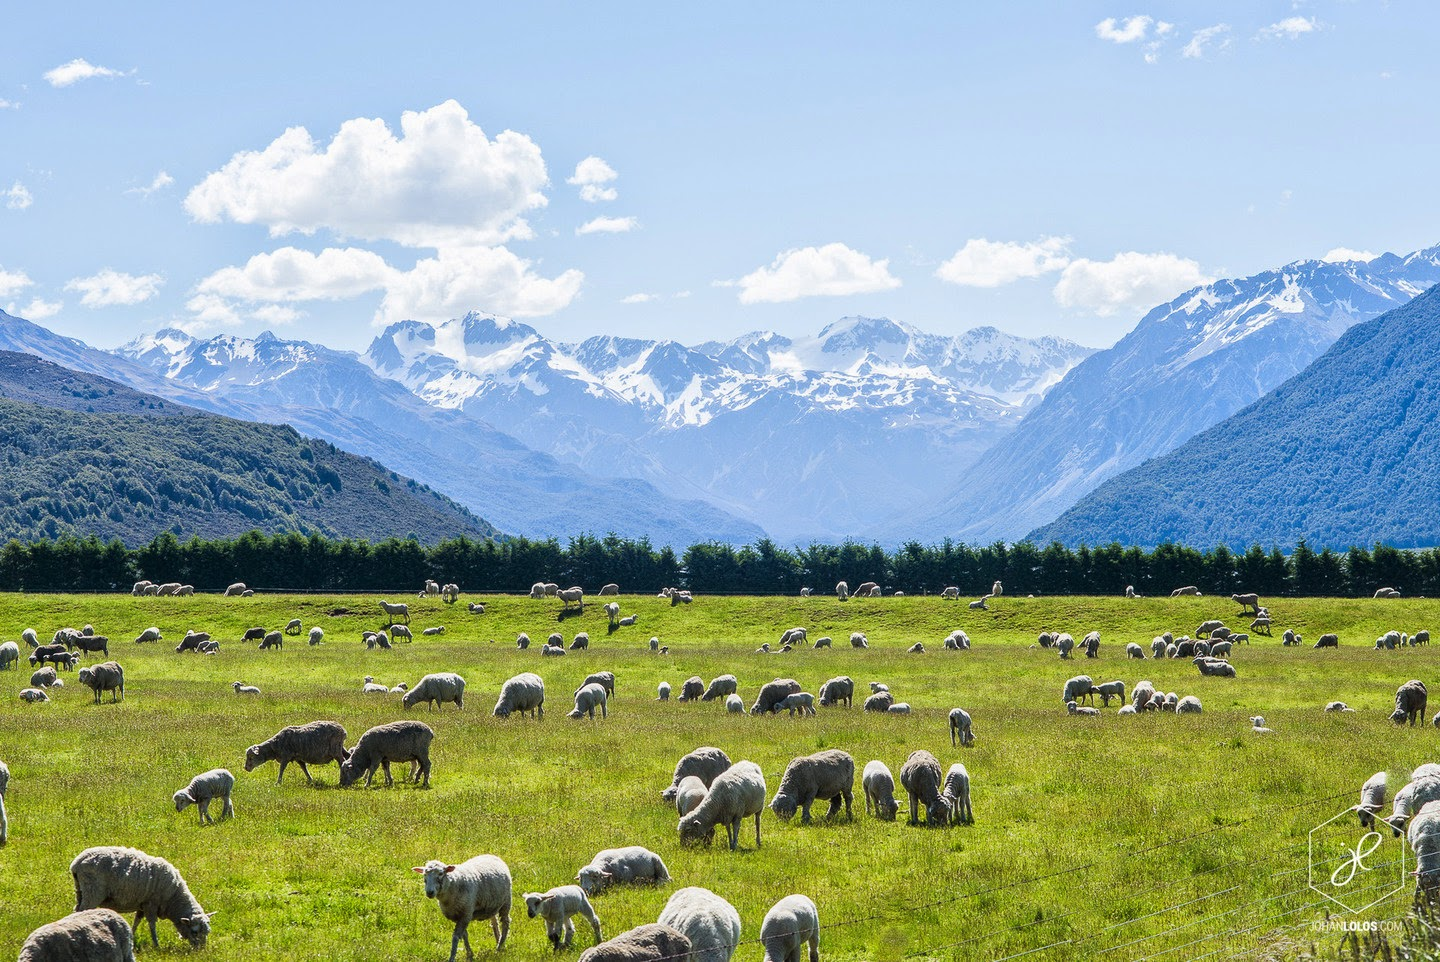 Arthur's Pass - He Traveled Around New Zealand In A Camper Van… This Is What He Saw.